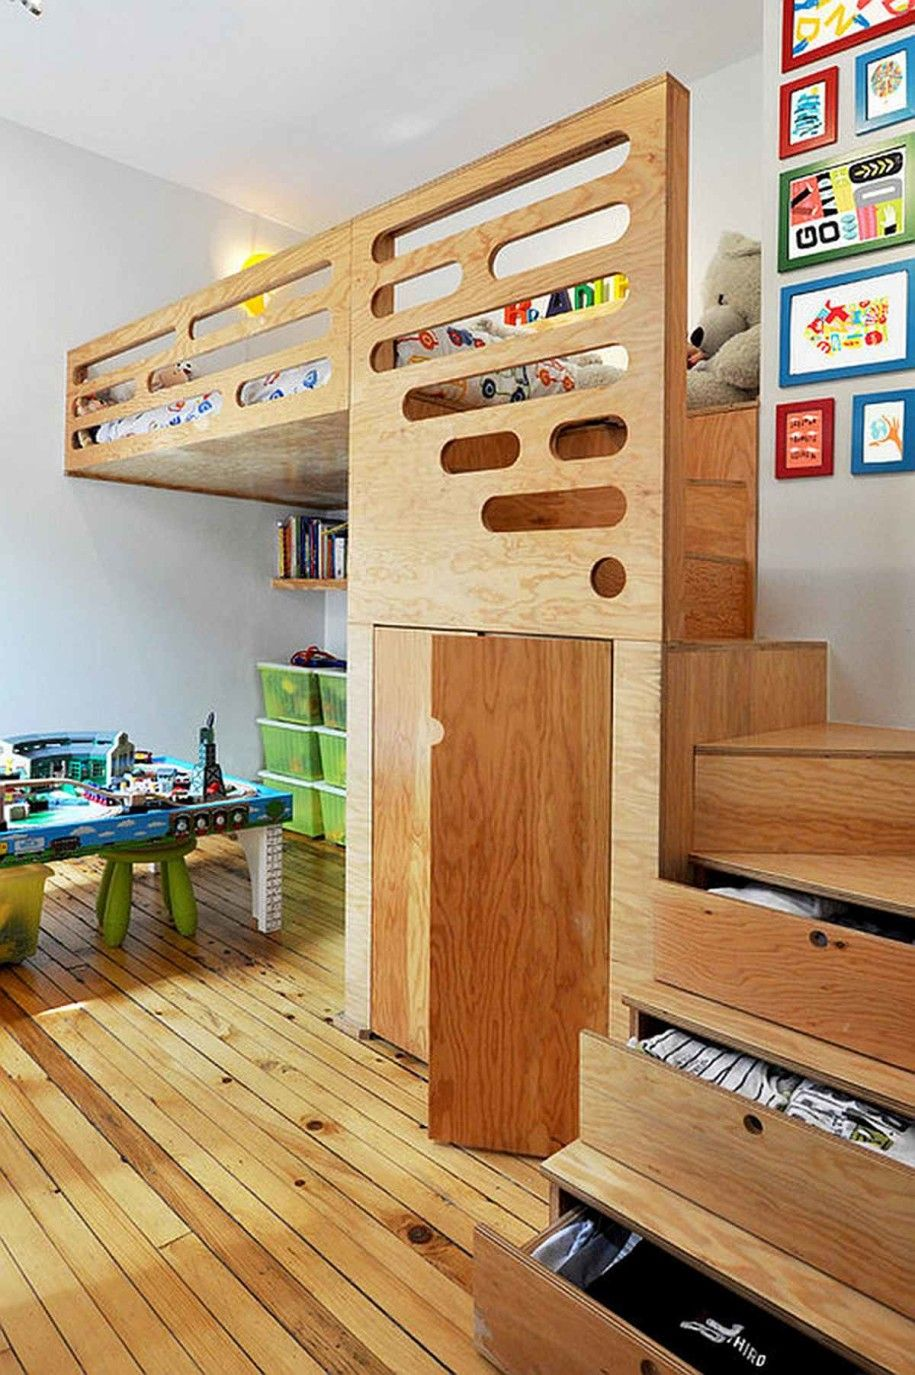 Loft bed ideas for boys  Kids space bed  Architecture  Pinterest  Modern kids Kids rooms